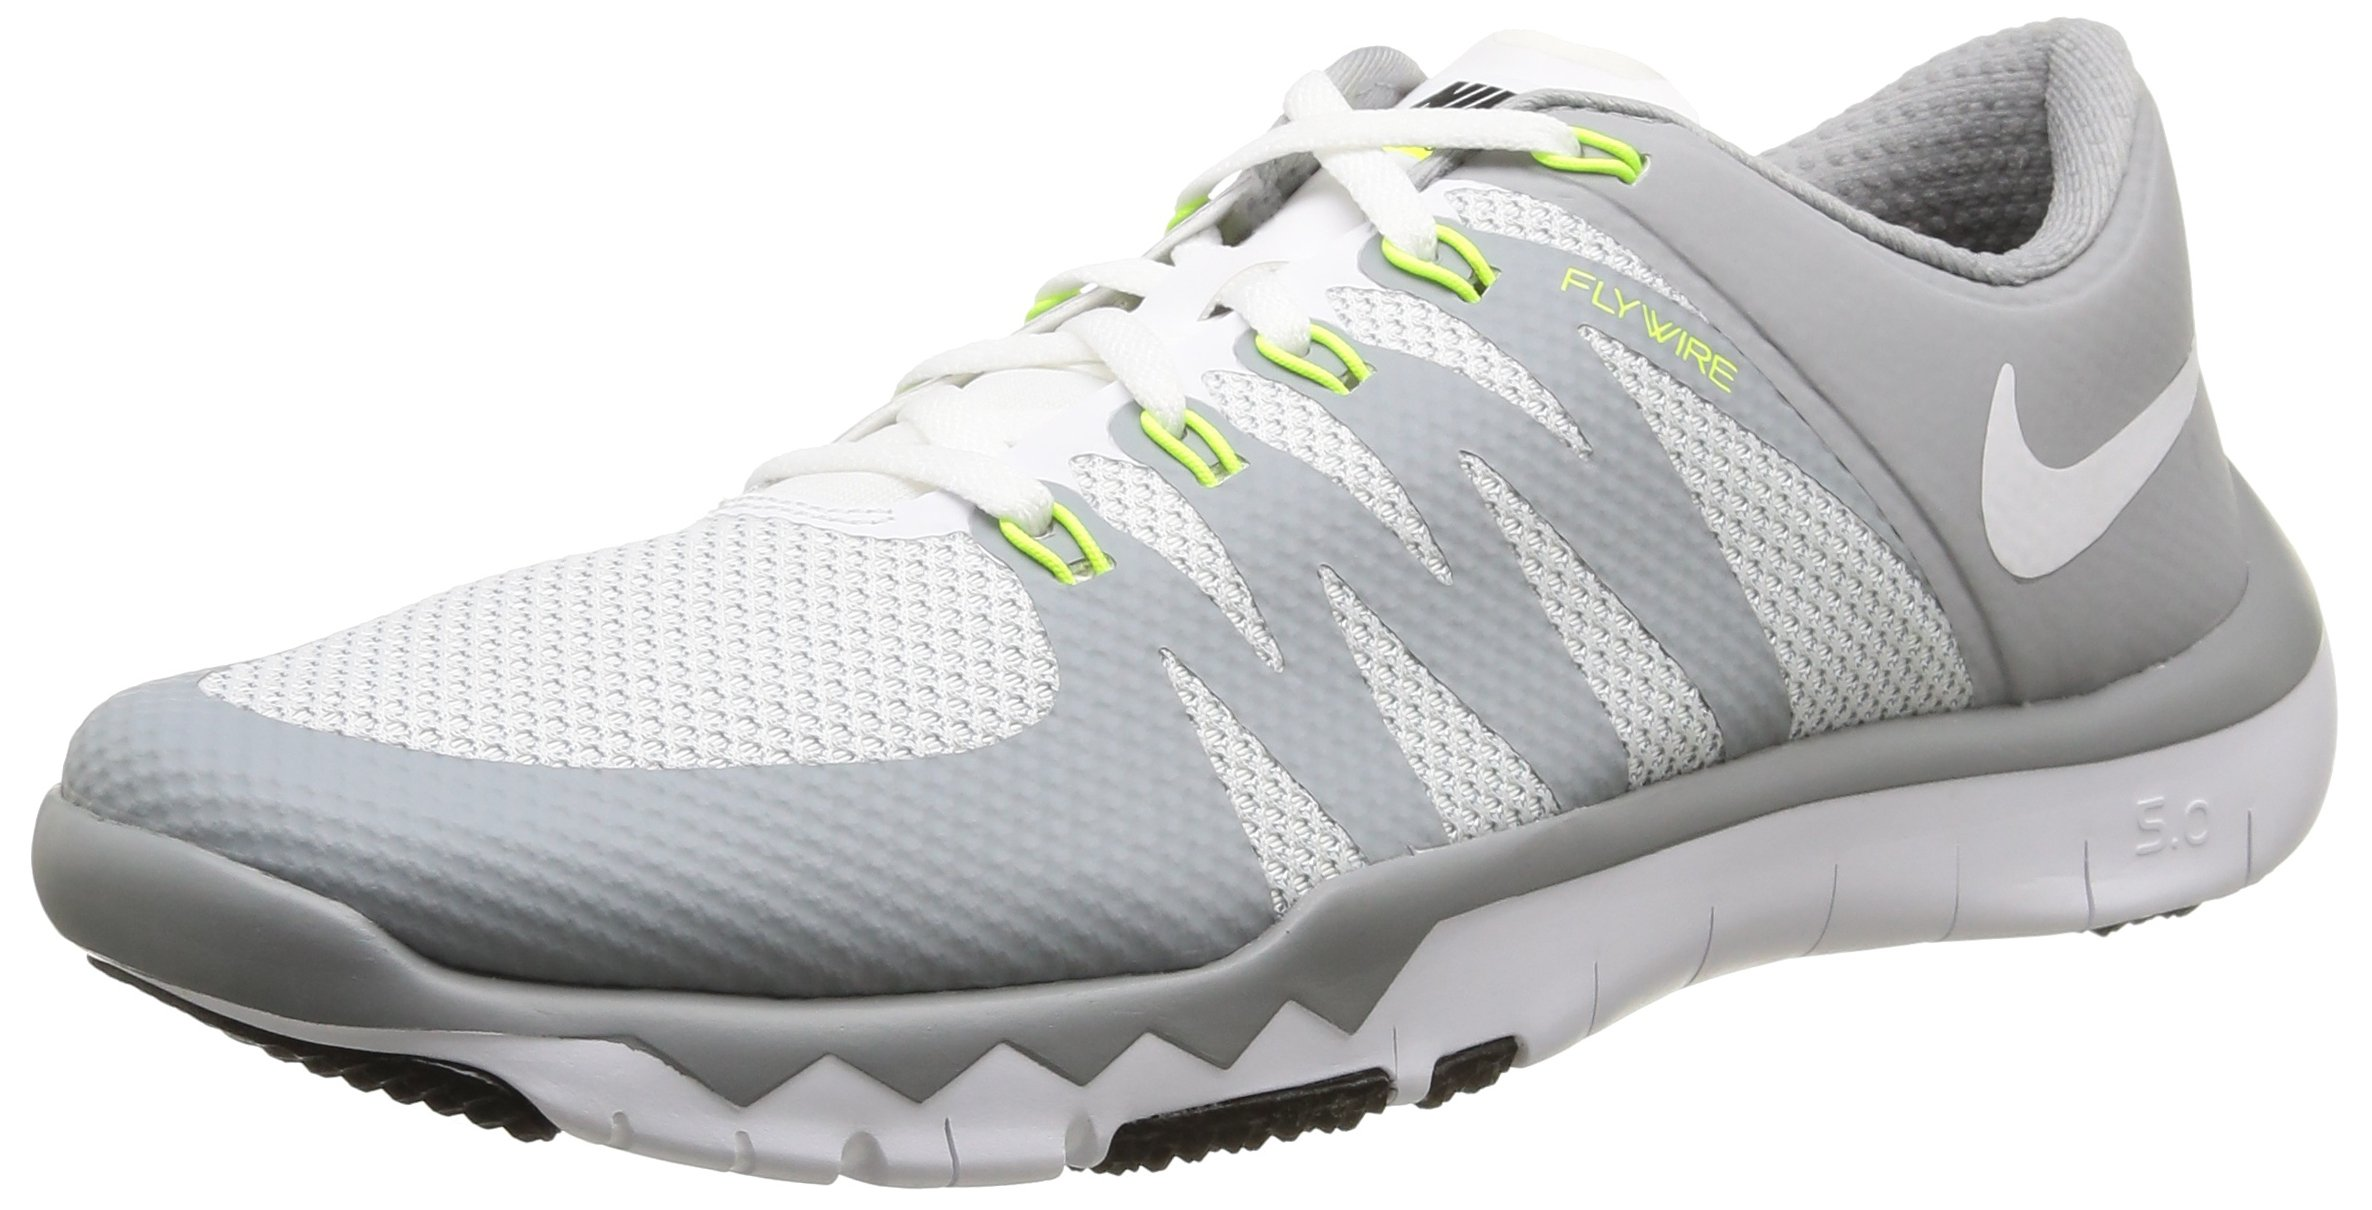 8ae7a6b369ccf2 Galleon - Nike Men s Free Trainer 5.0 V6 Cross-Trainers Shoes 7 M US